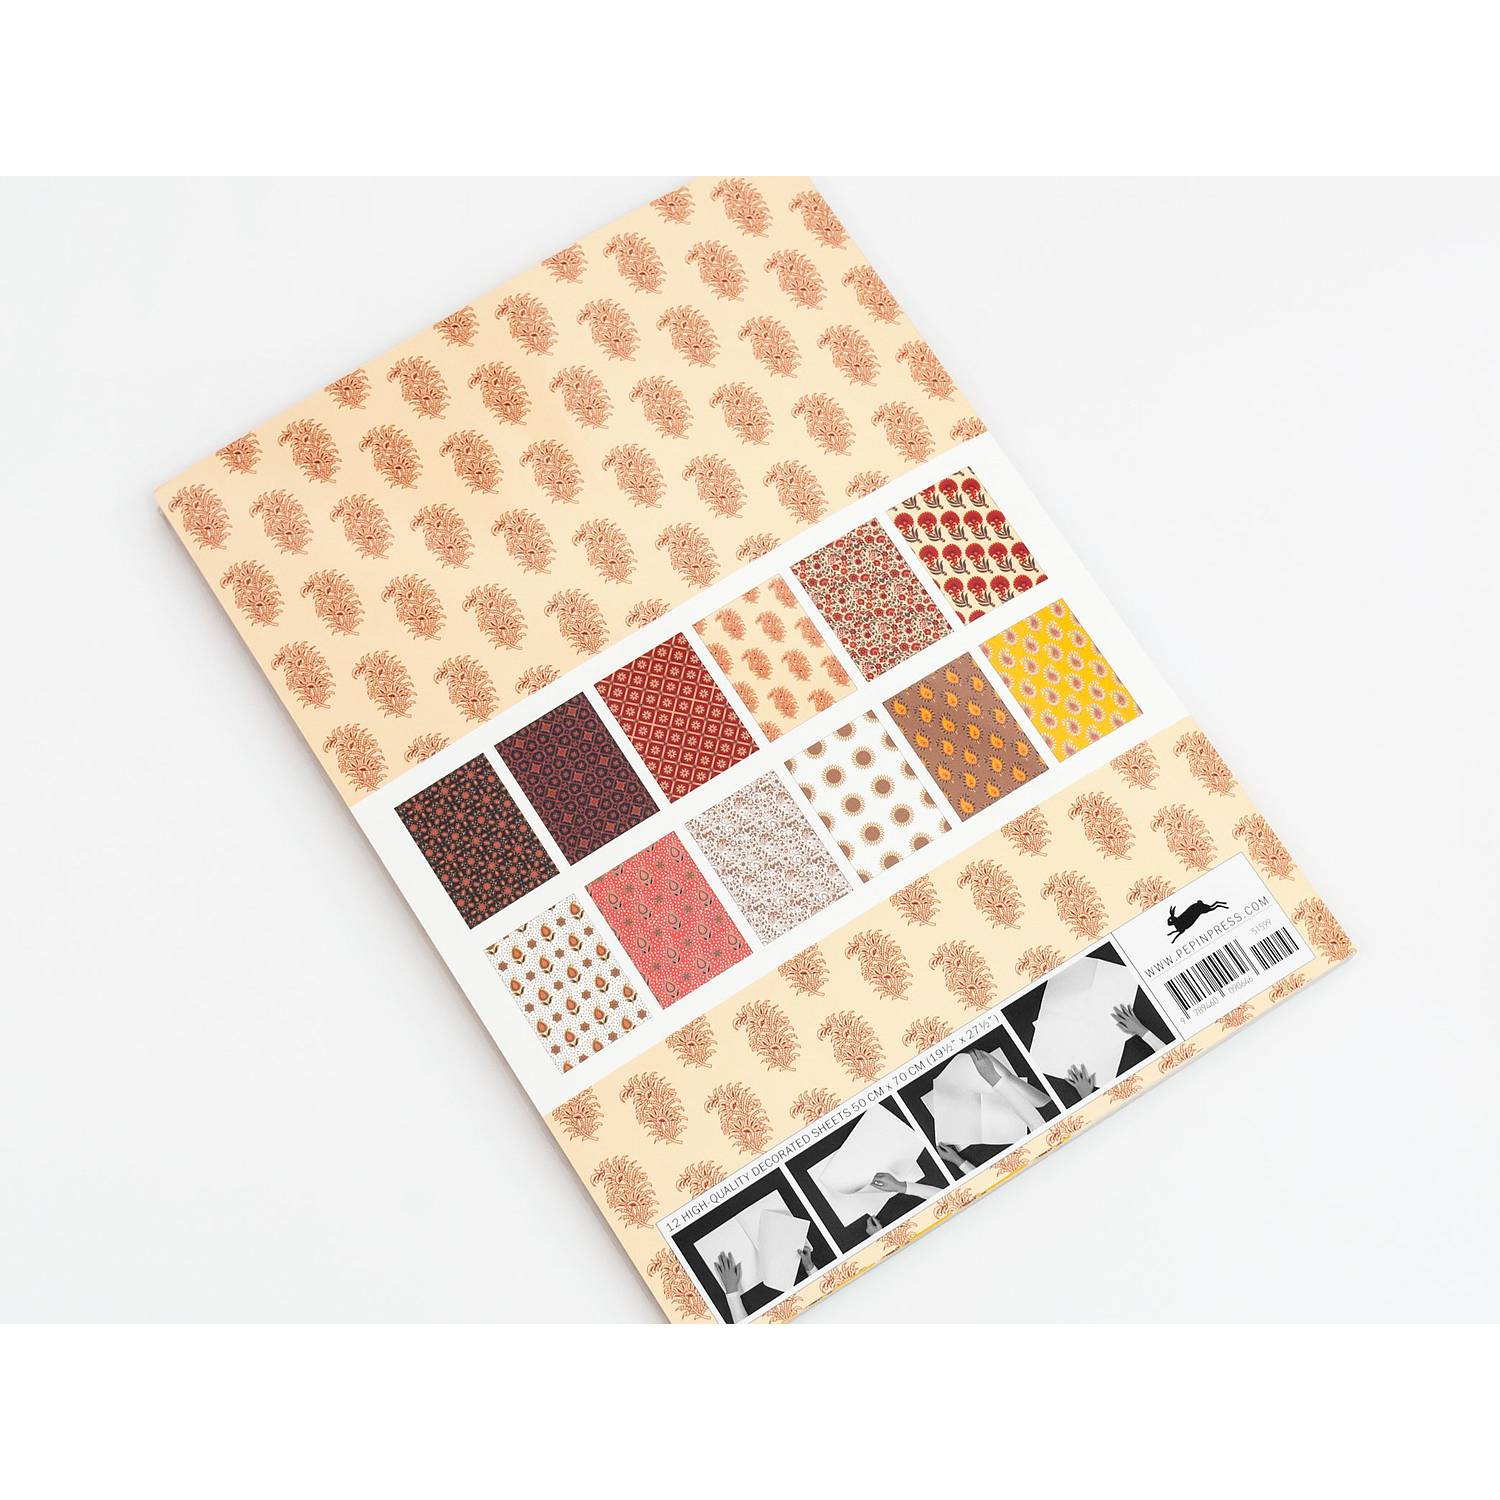 Gift Wrap Book 52 - Indian Patterns